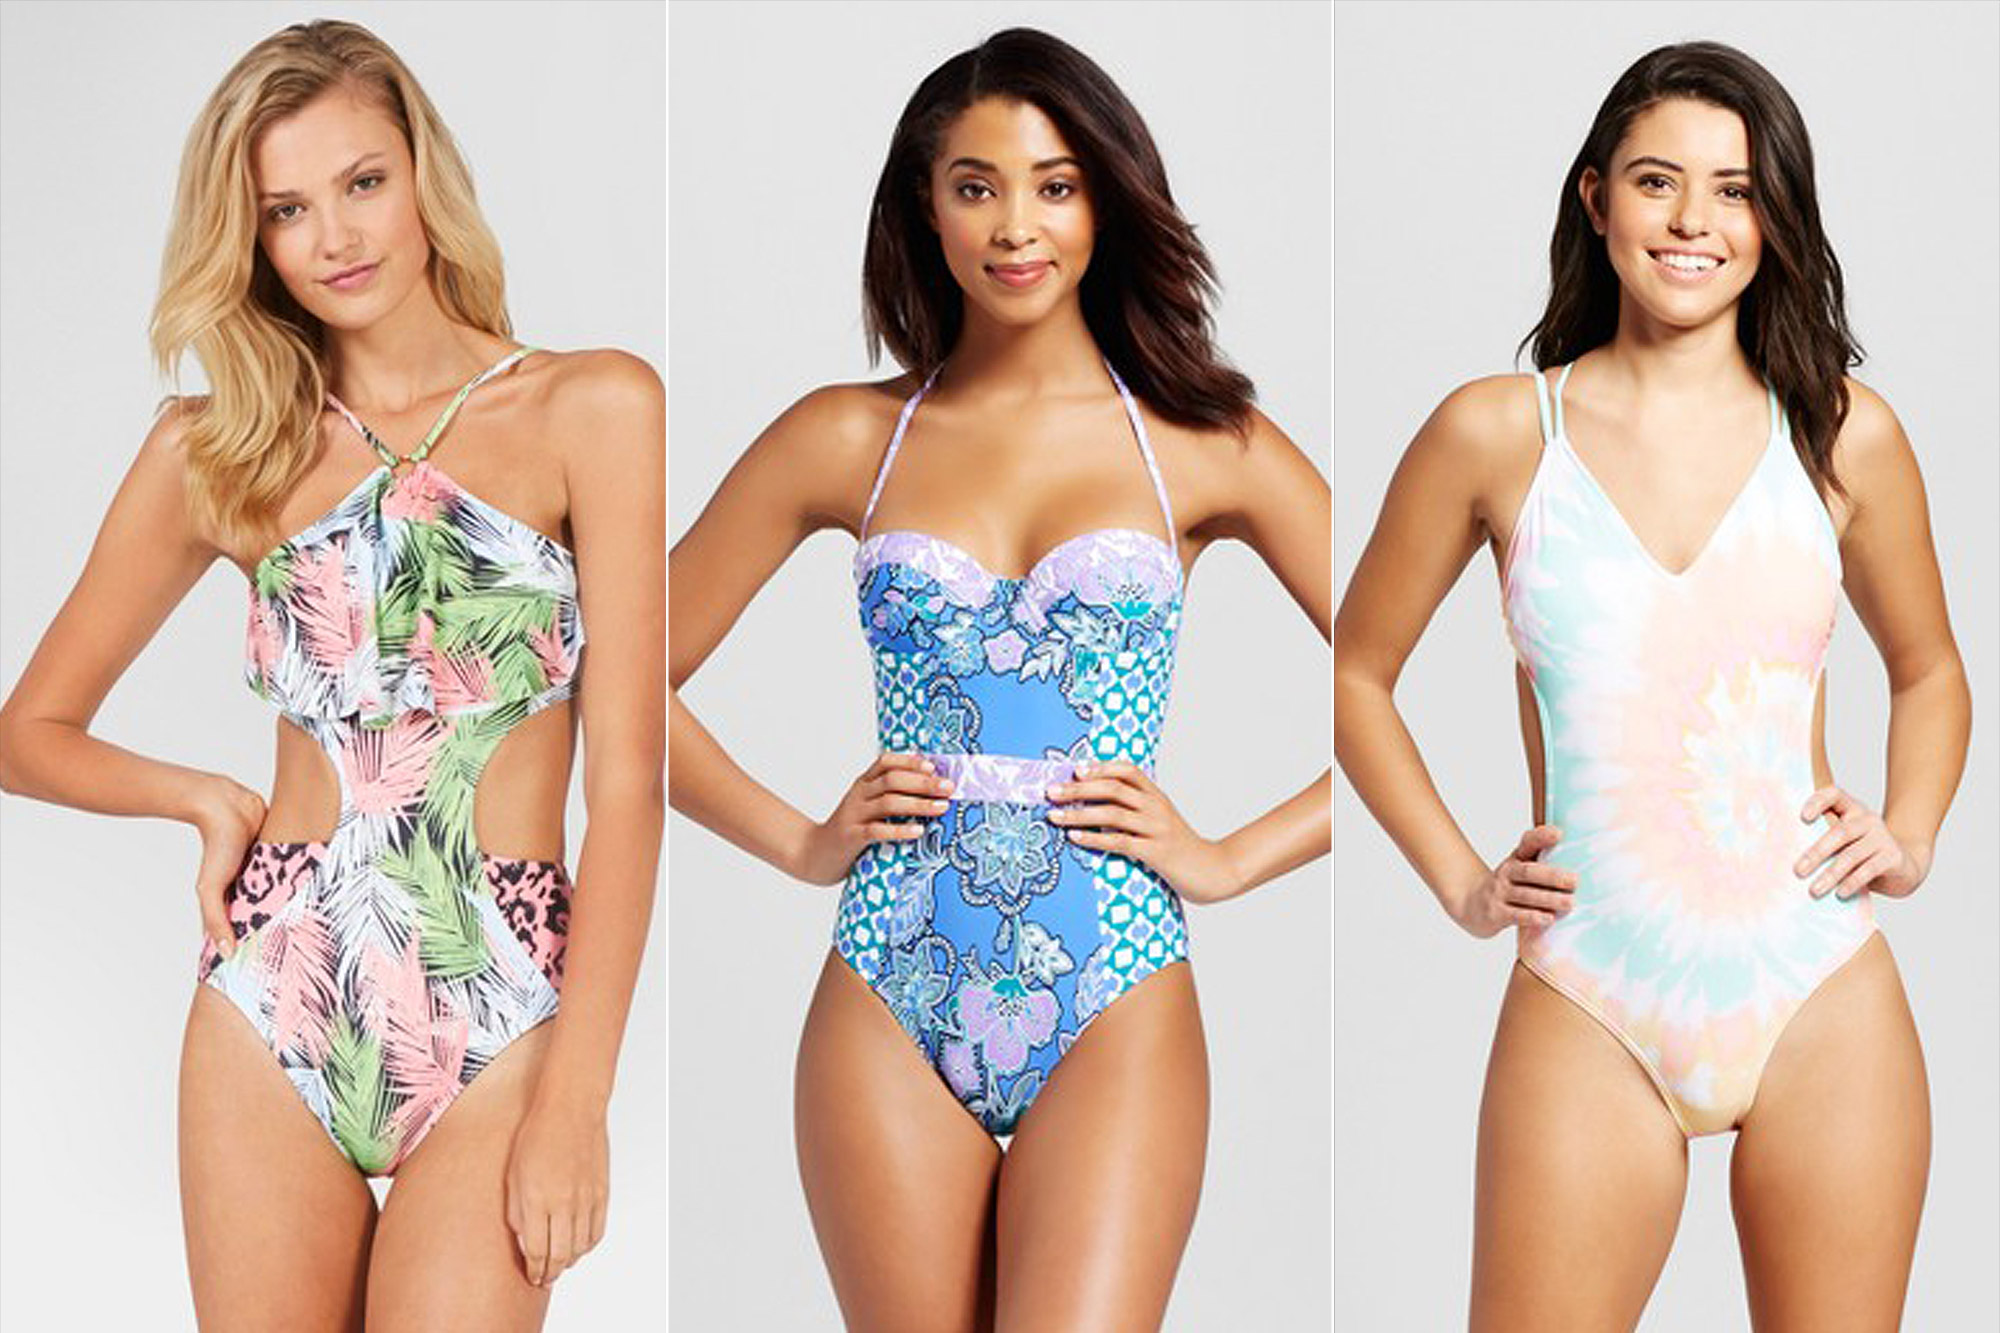 Target Has New (Adorable) Swimsuit Styles: Here's What to Buy Before They Sell Out!